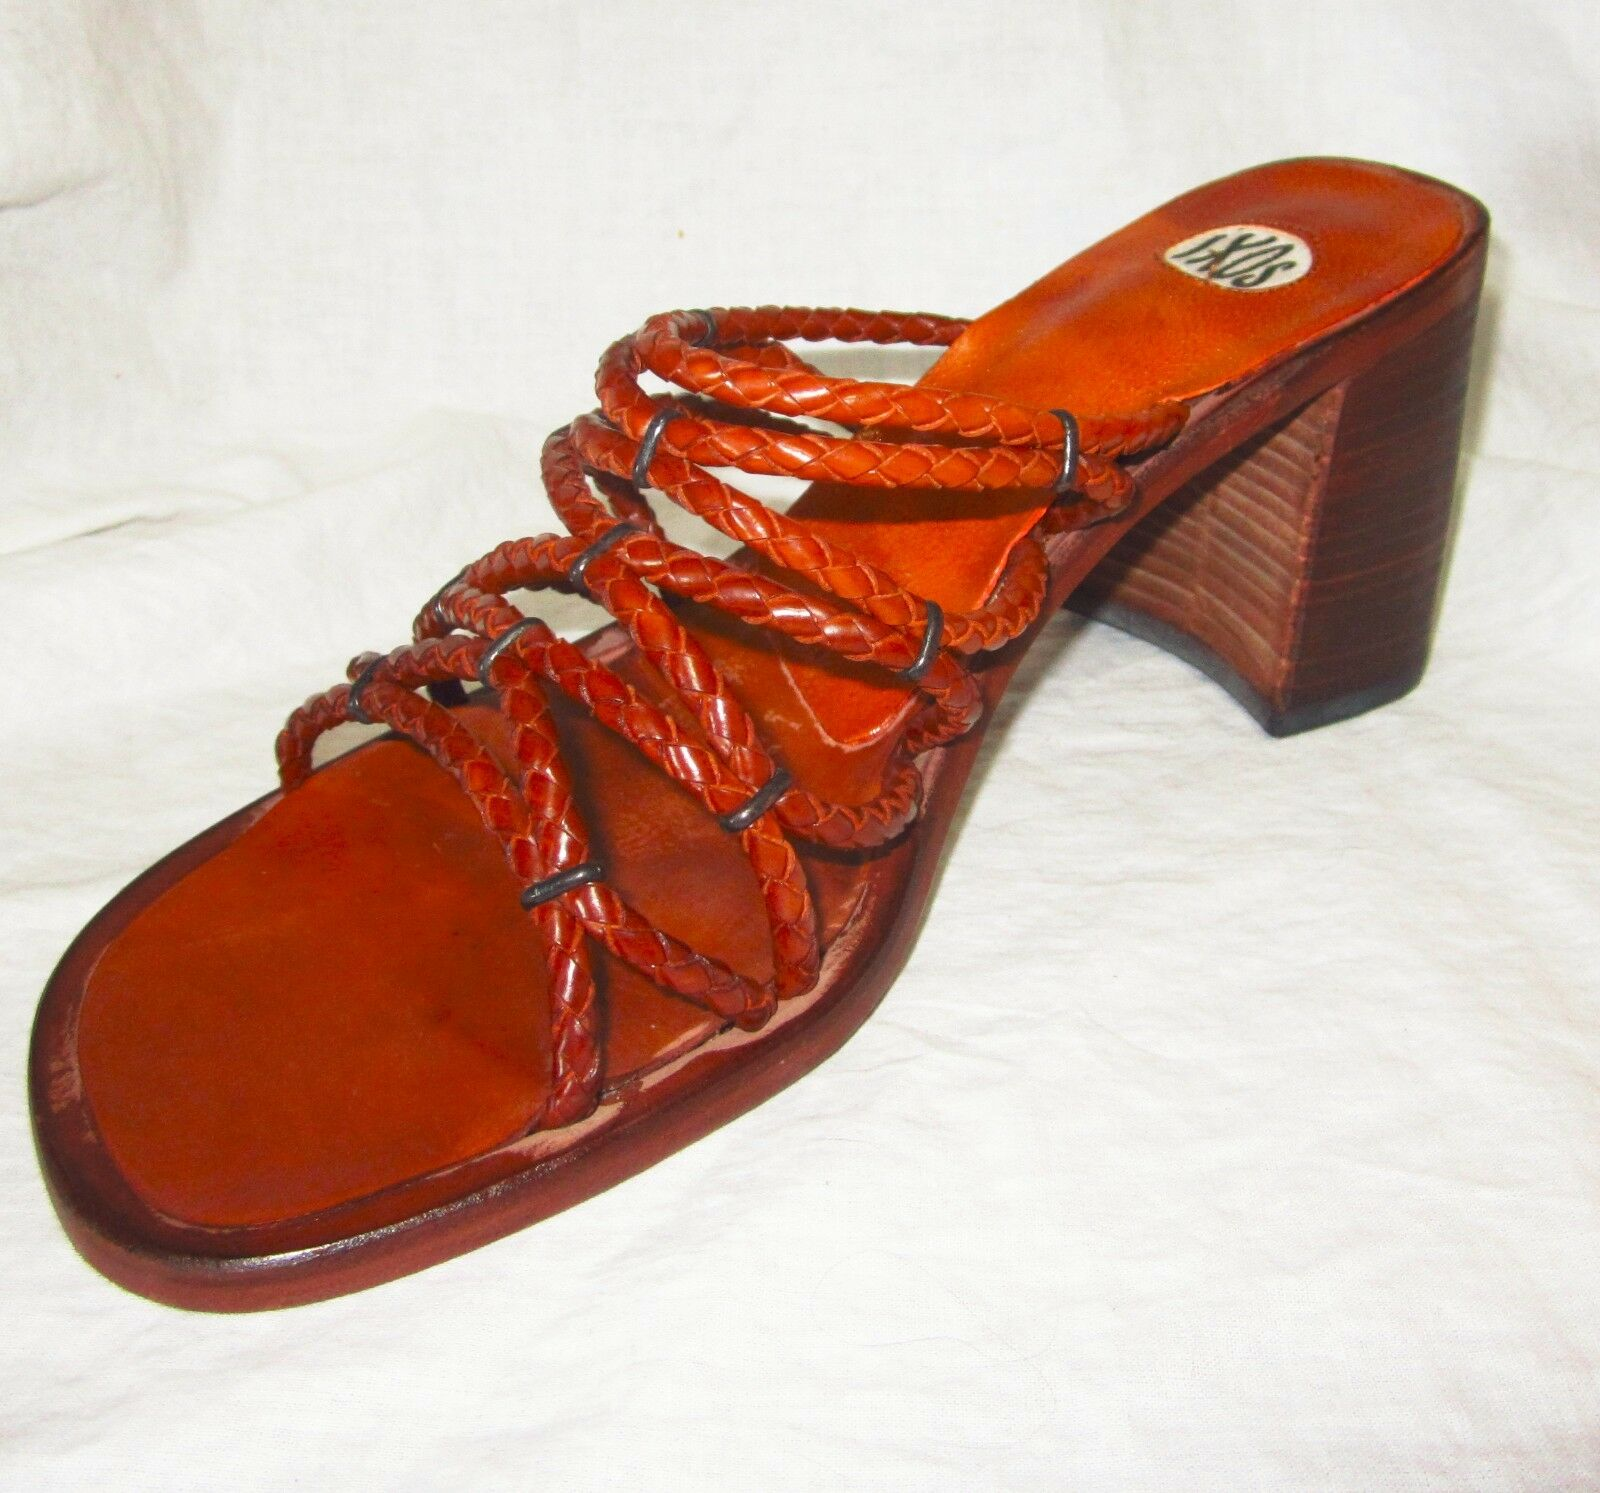 New Artsy Slides Sandals 8 MADE IN ITALY - Heels Braided Leather by IXOS